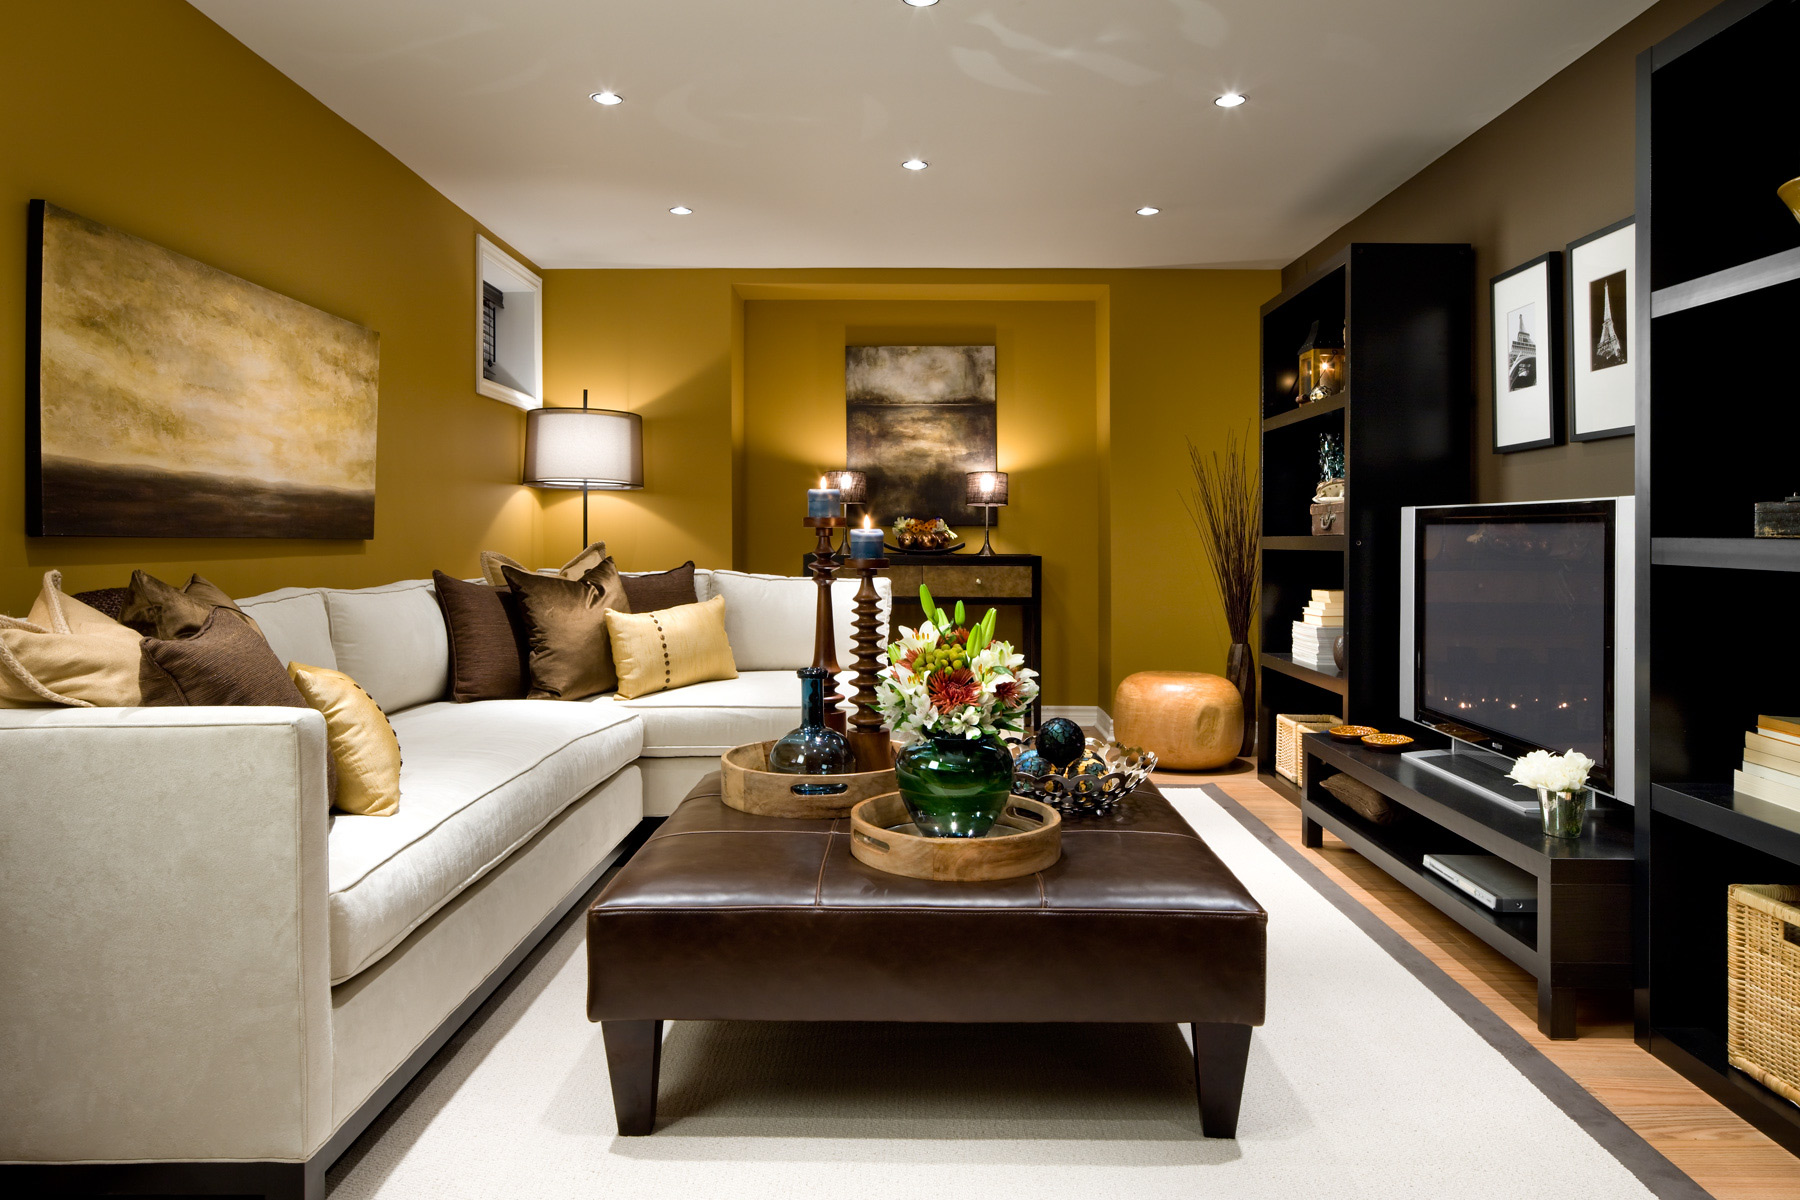 Small living room ideas - Make your small living room glow with ...